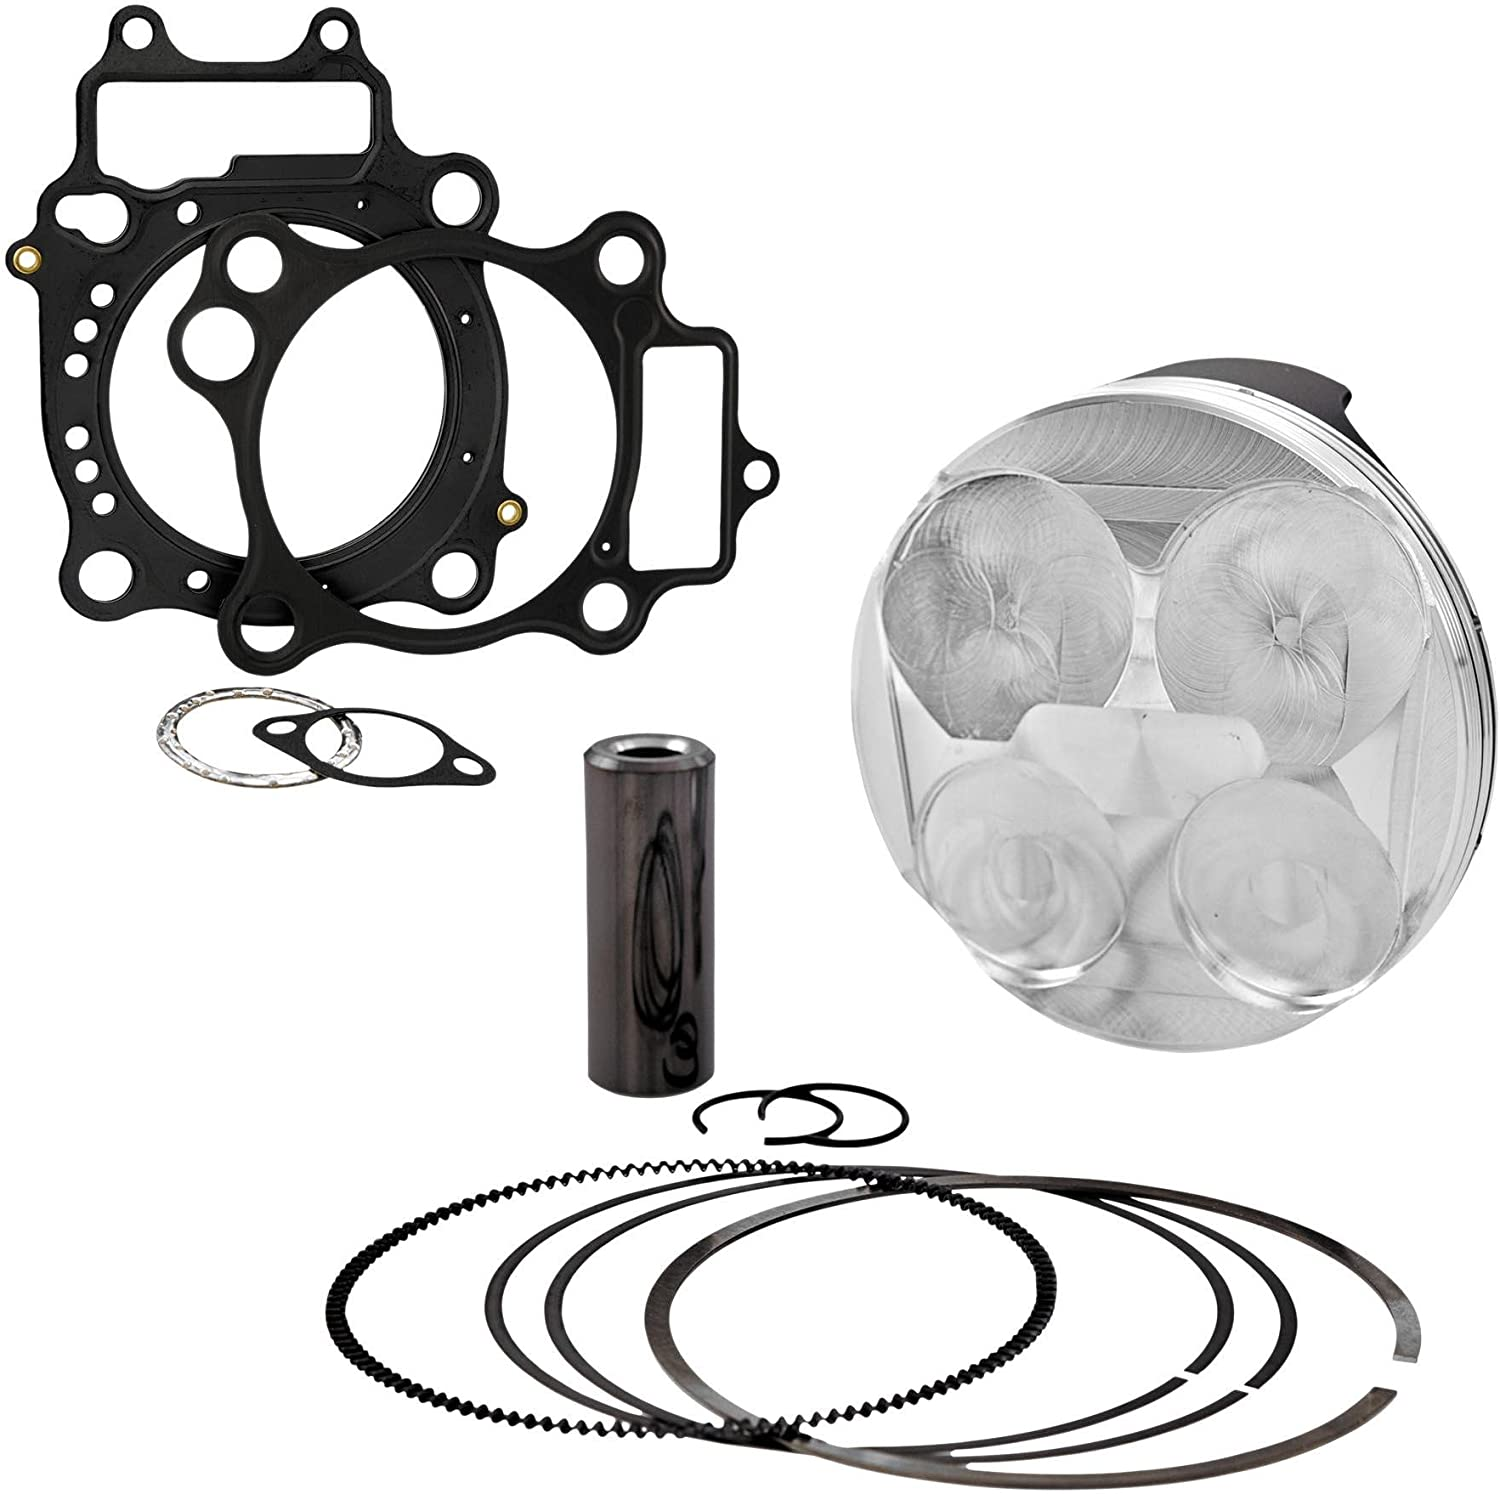 67% OFF of fixed price Cp Pistons Cpk Kit Crf250R Latest item 14.5:1 CPKX2172C